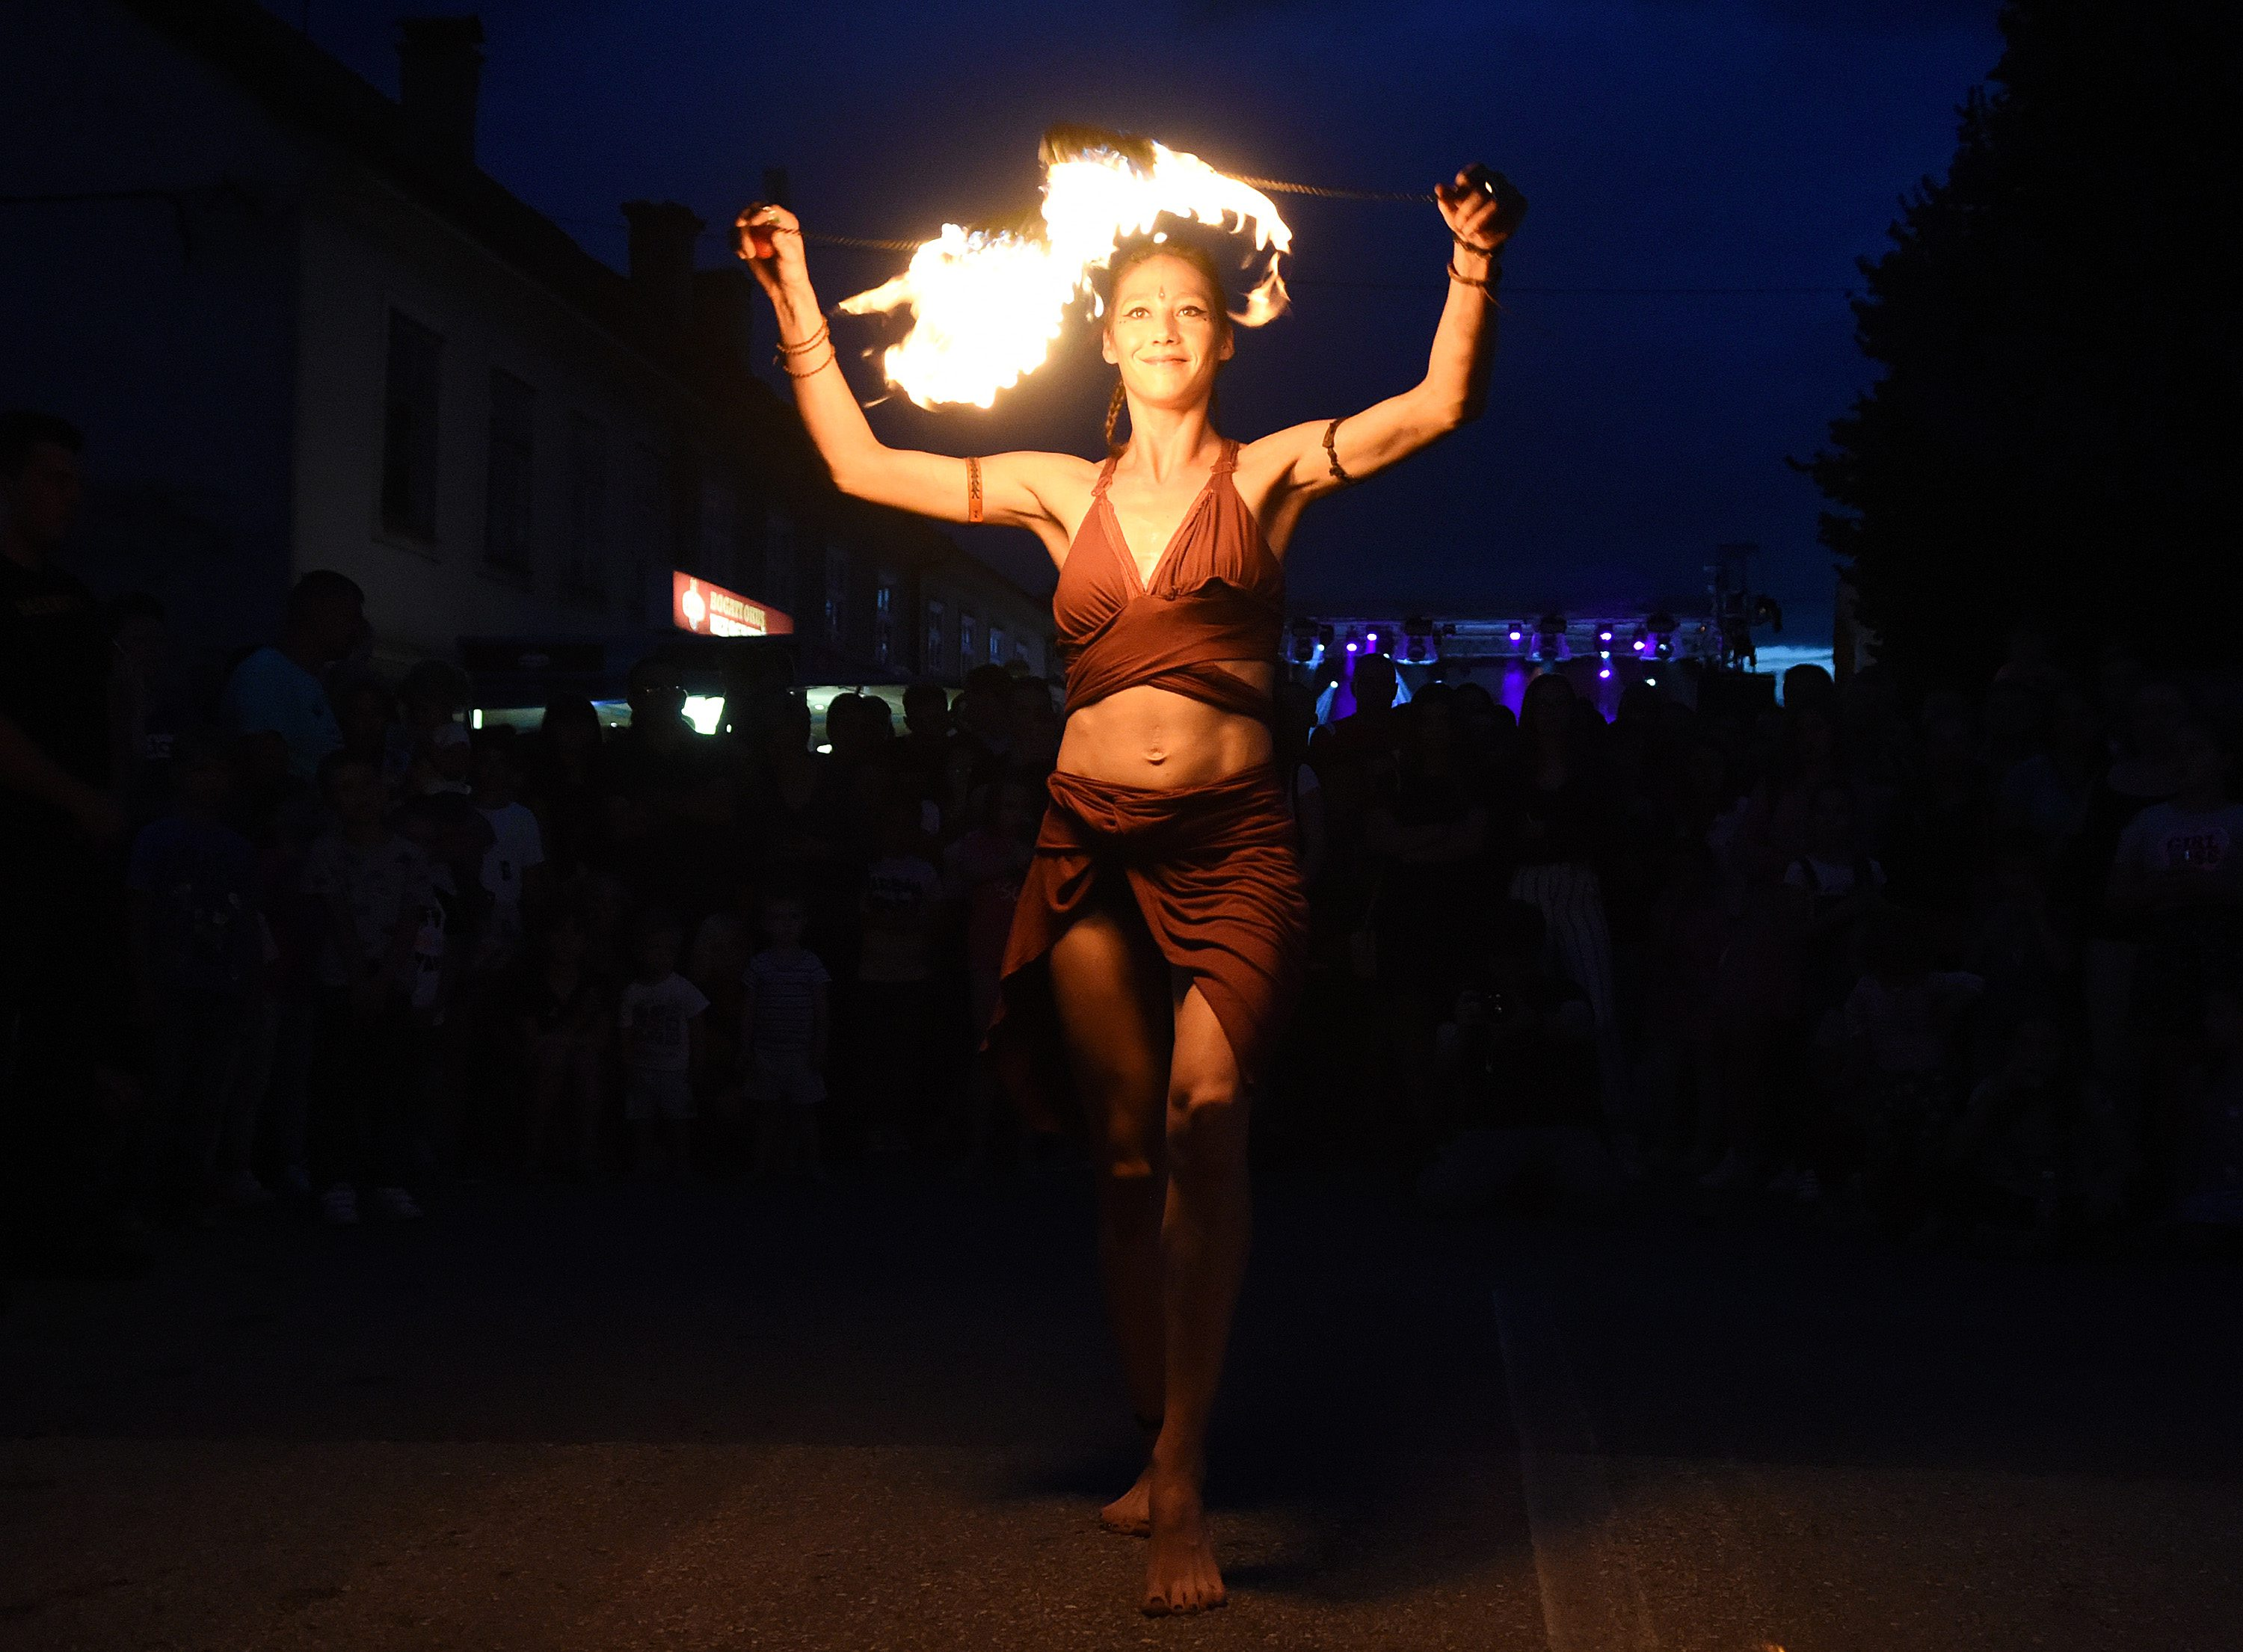 girl, dancing, fire